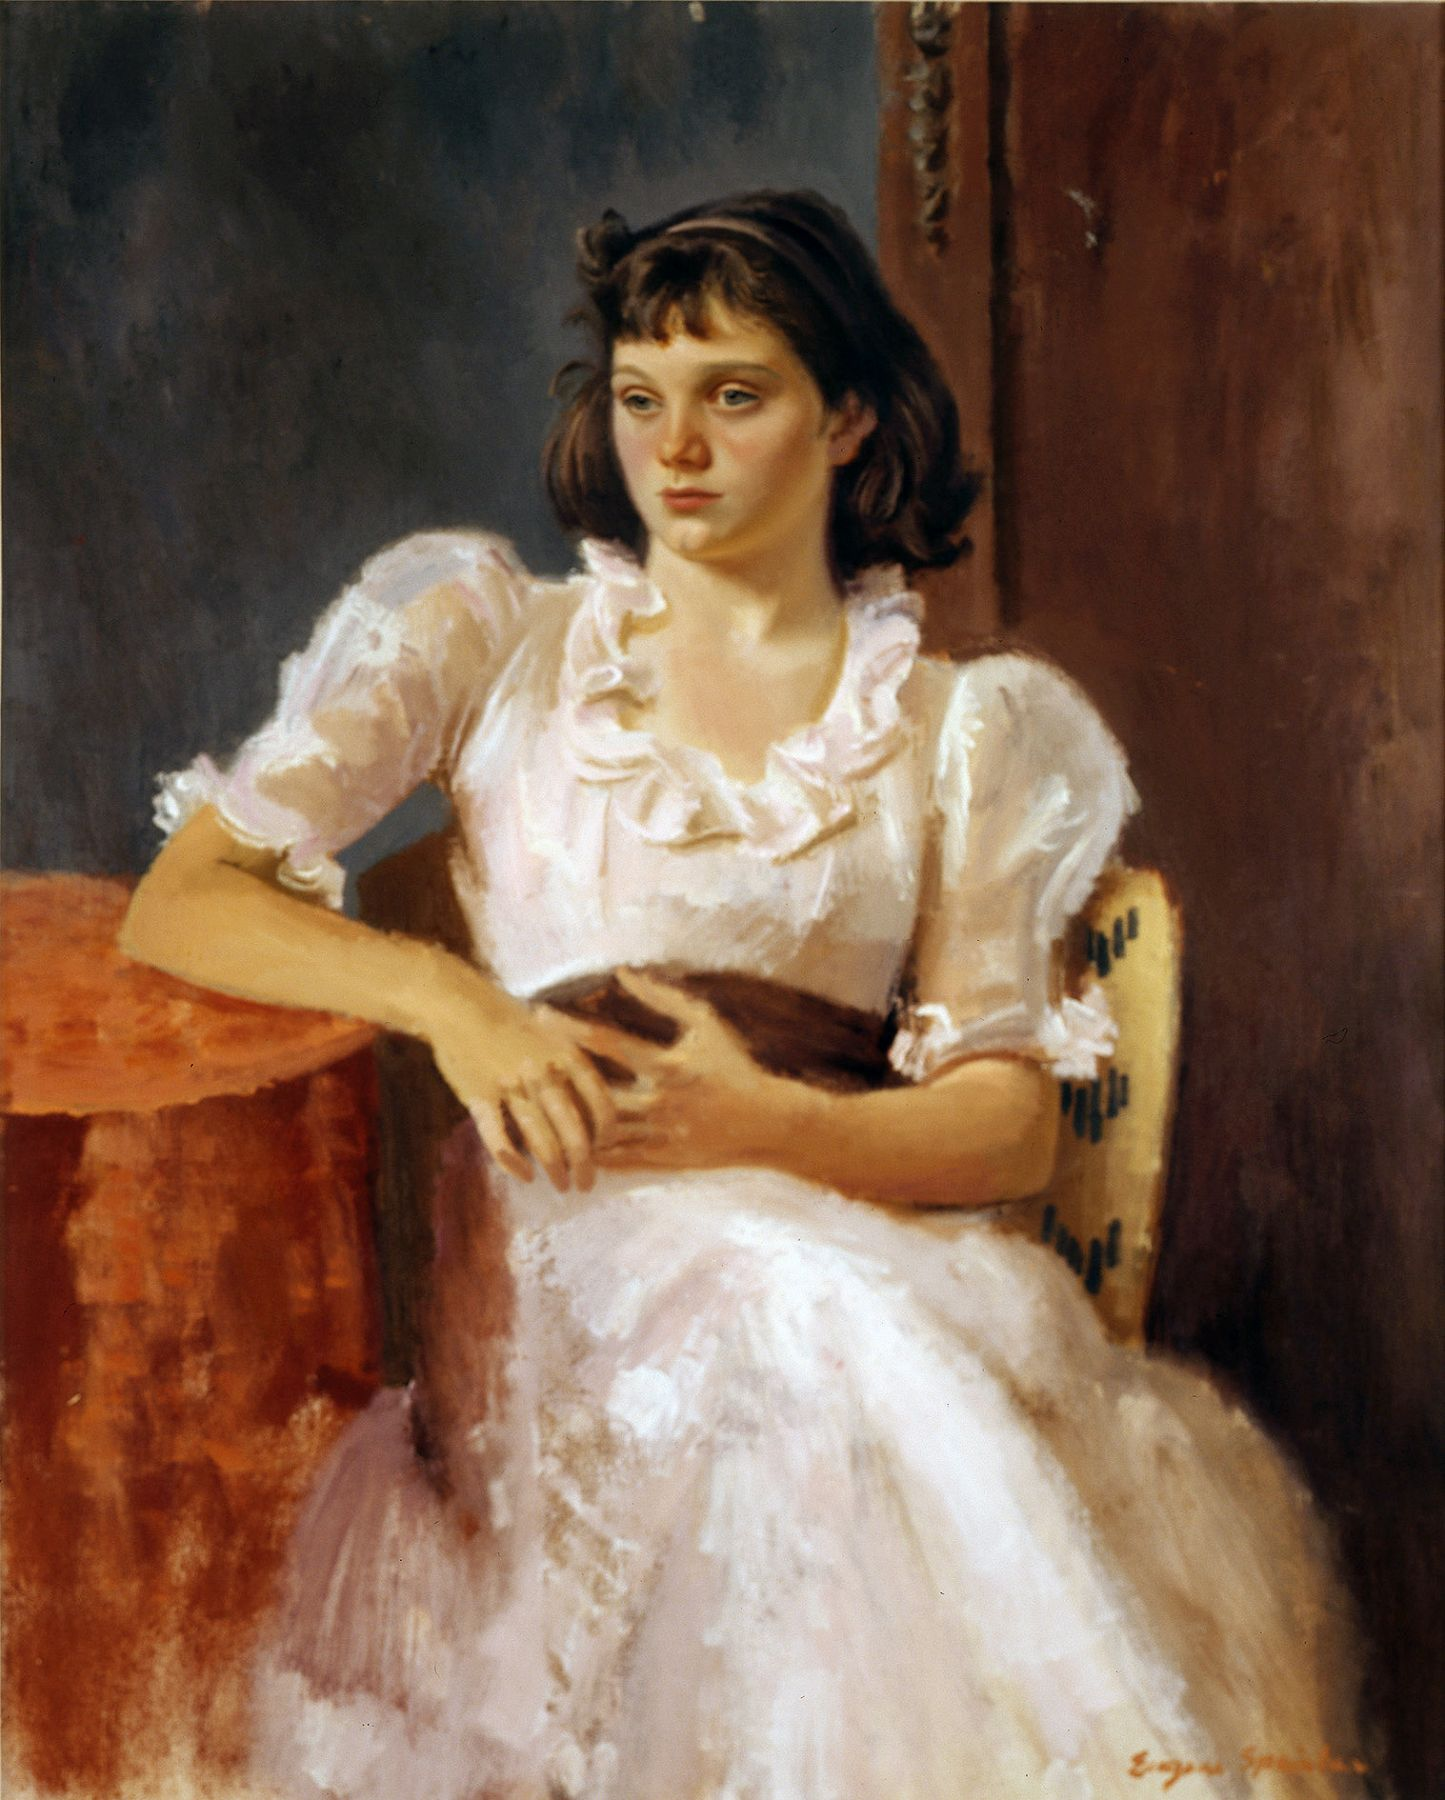 Eugene Speicher, Young Girl in Pink Dress, c. 1935, oil on canvas, 45 x 36 inches